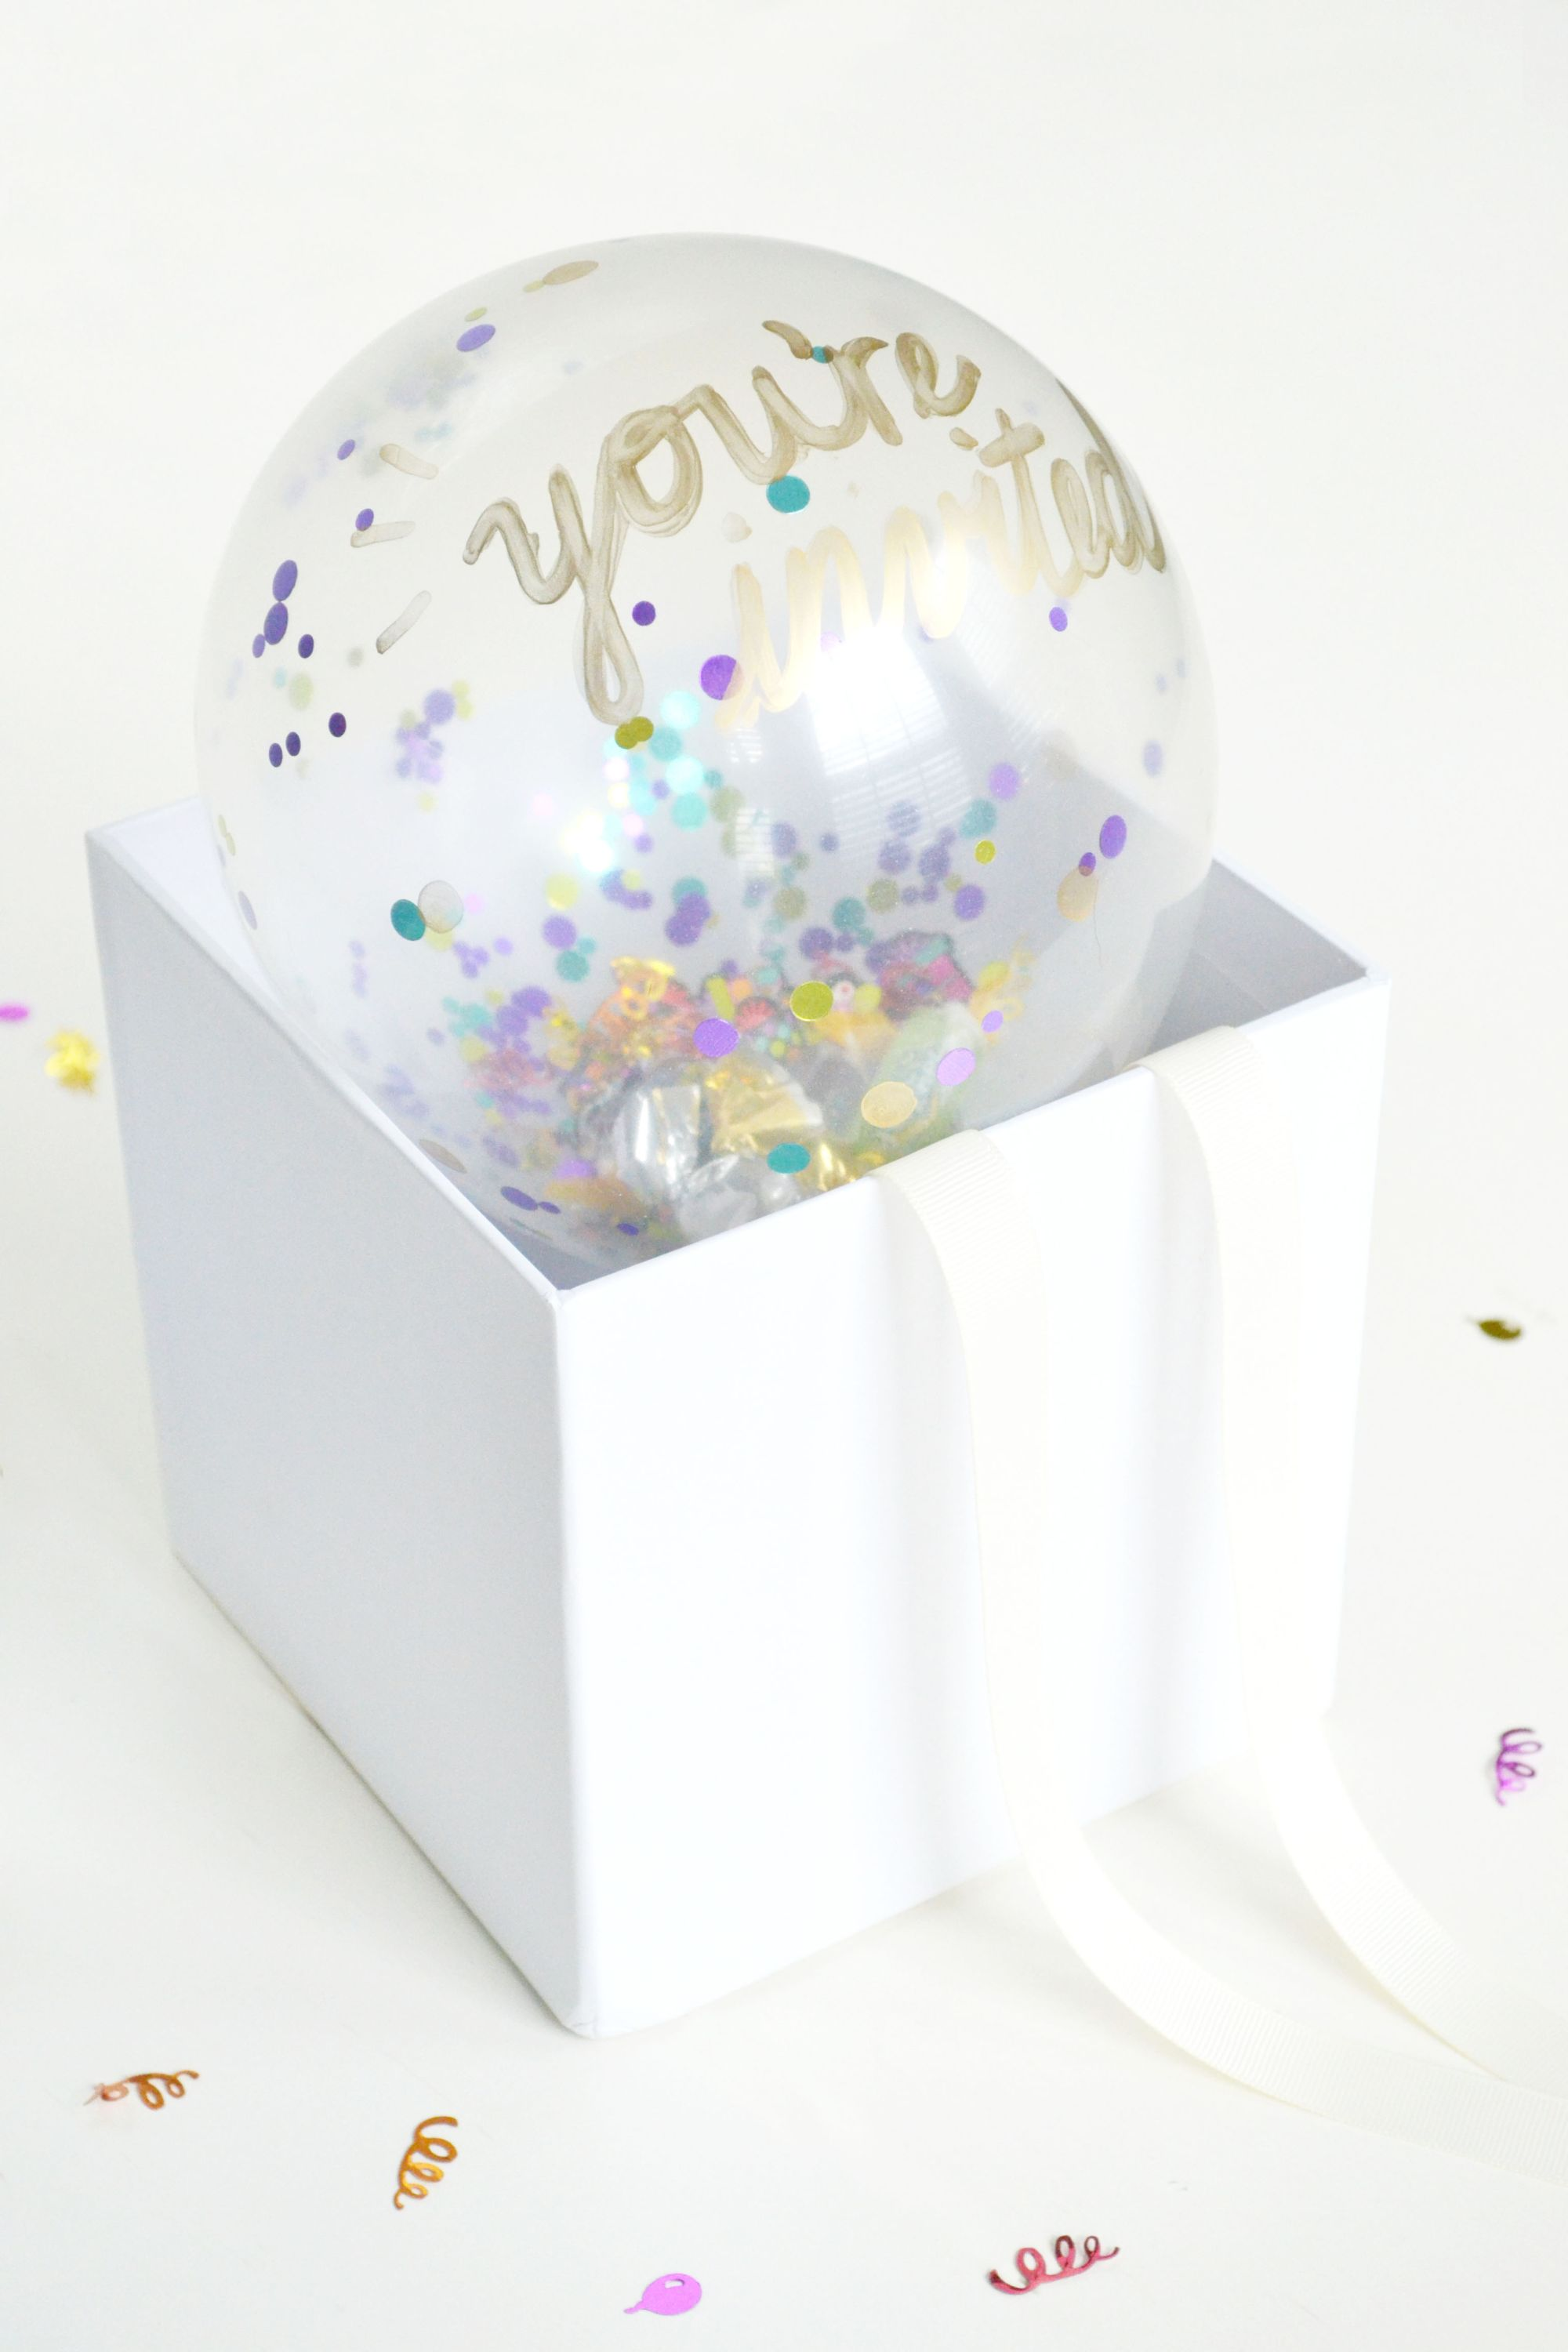 Confetti Balloon Invites Box